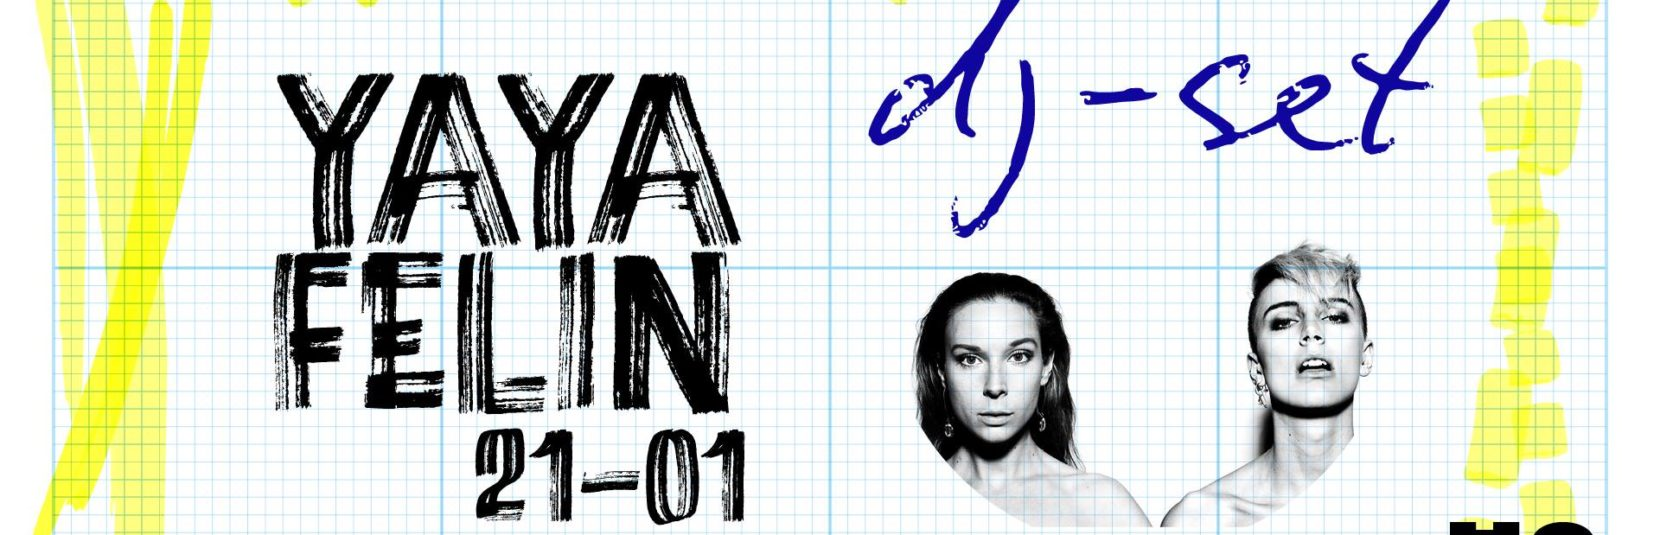 YAYA + Felin = Let's dance! [DJ-set]